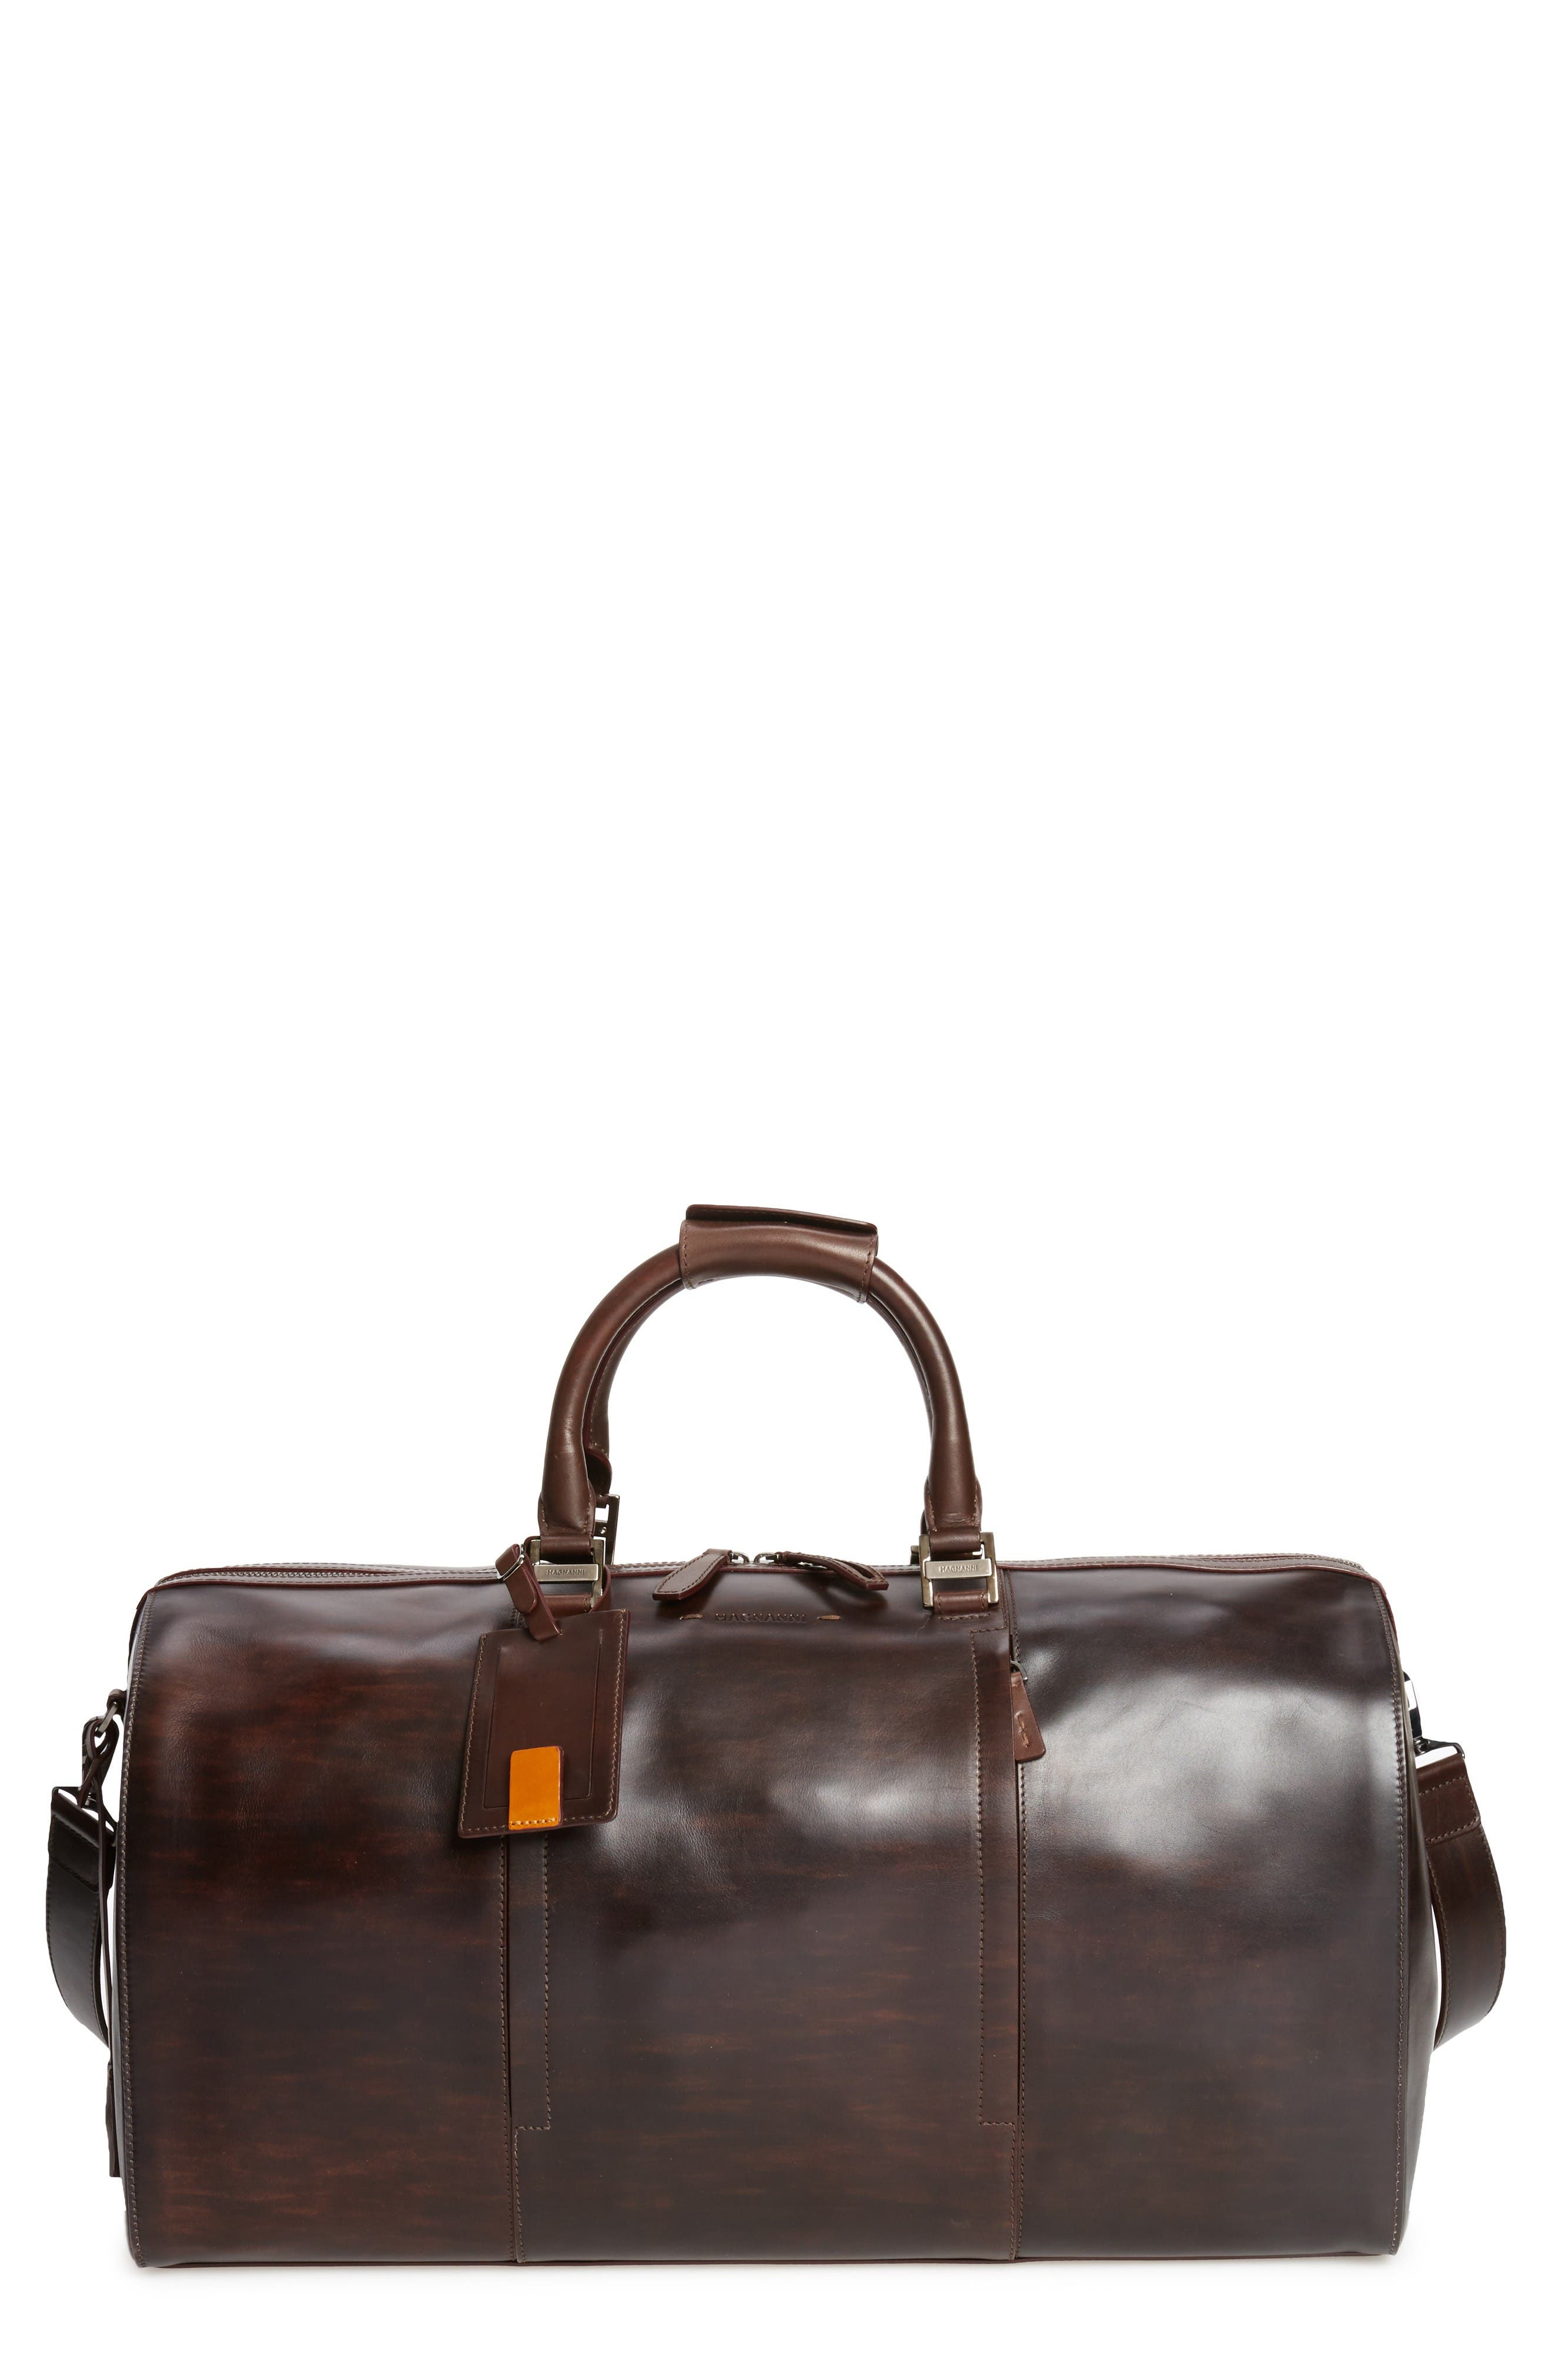 Main Image - Magnanni Traveler Leather Duffel Bag